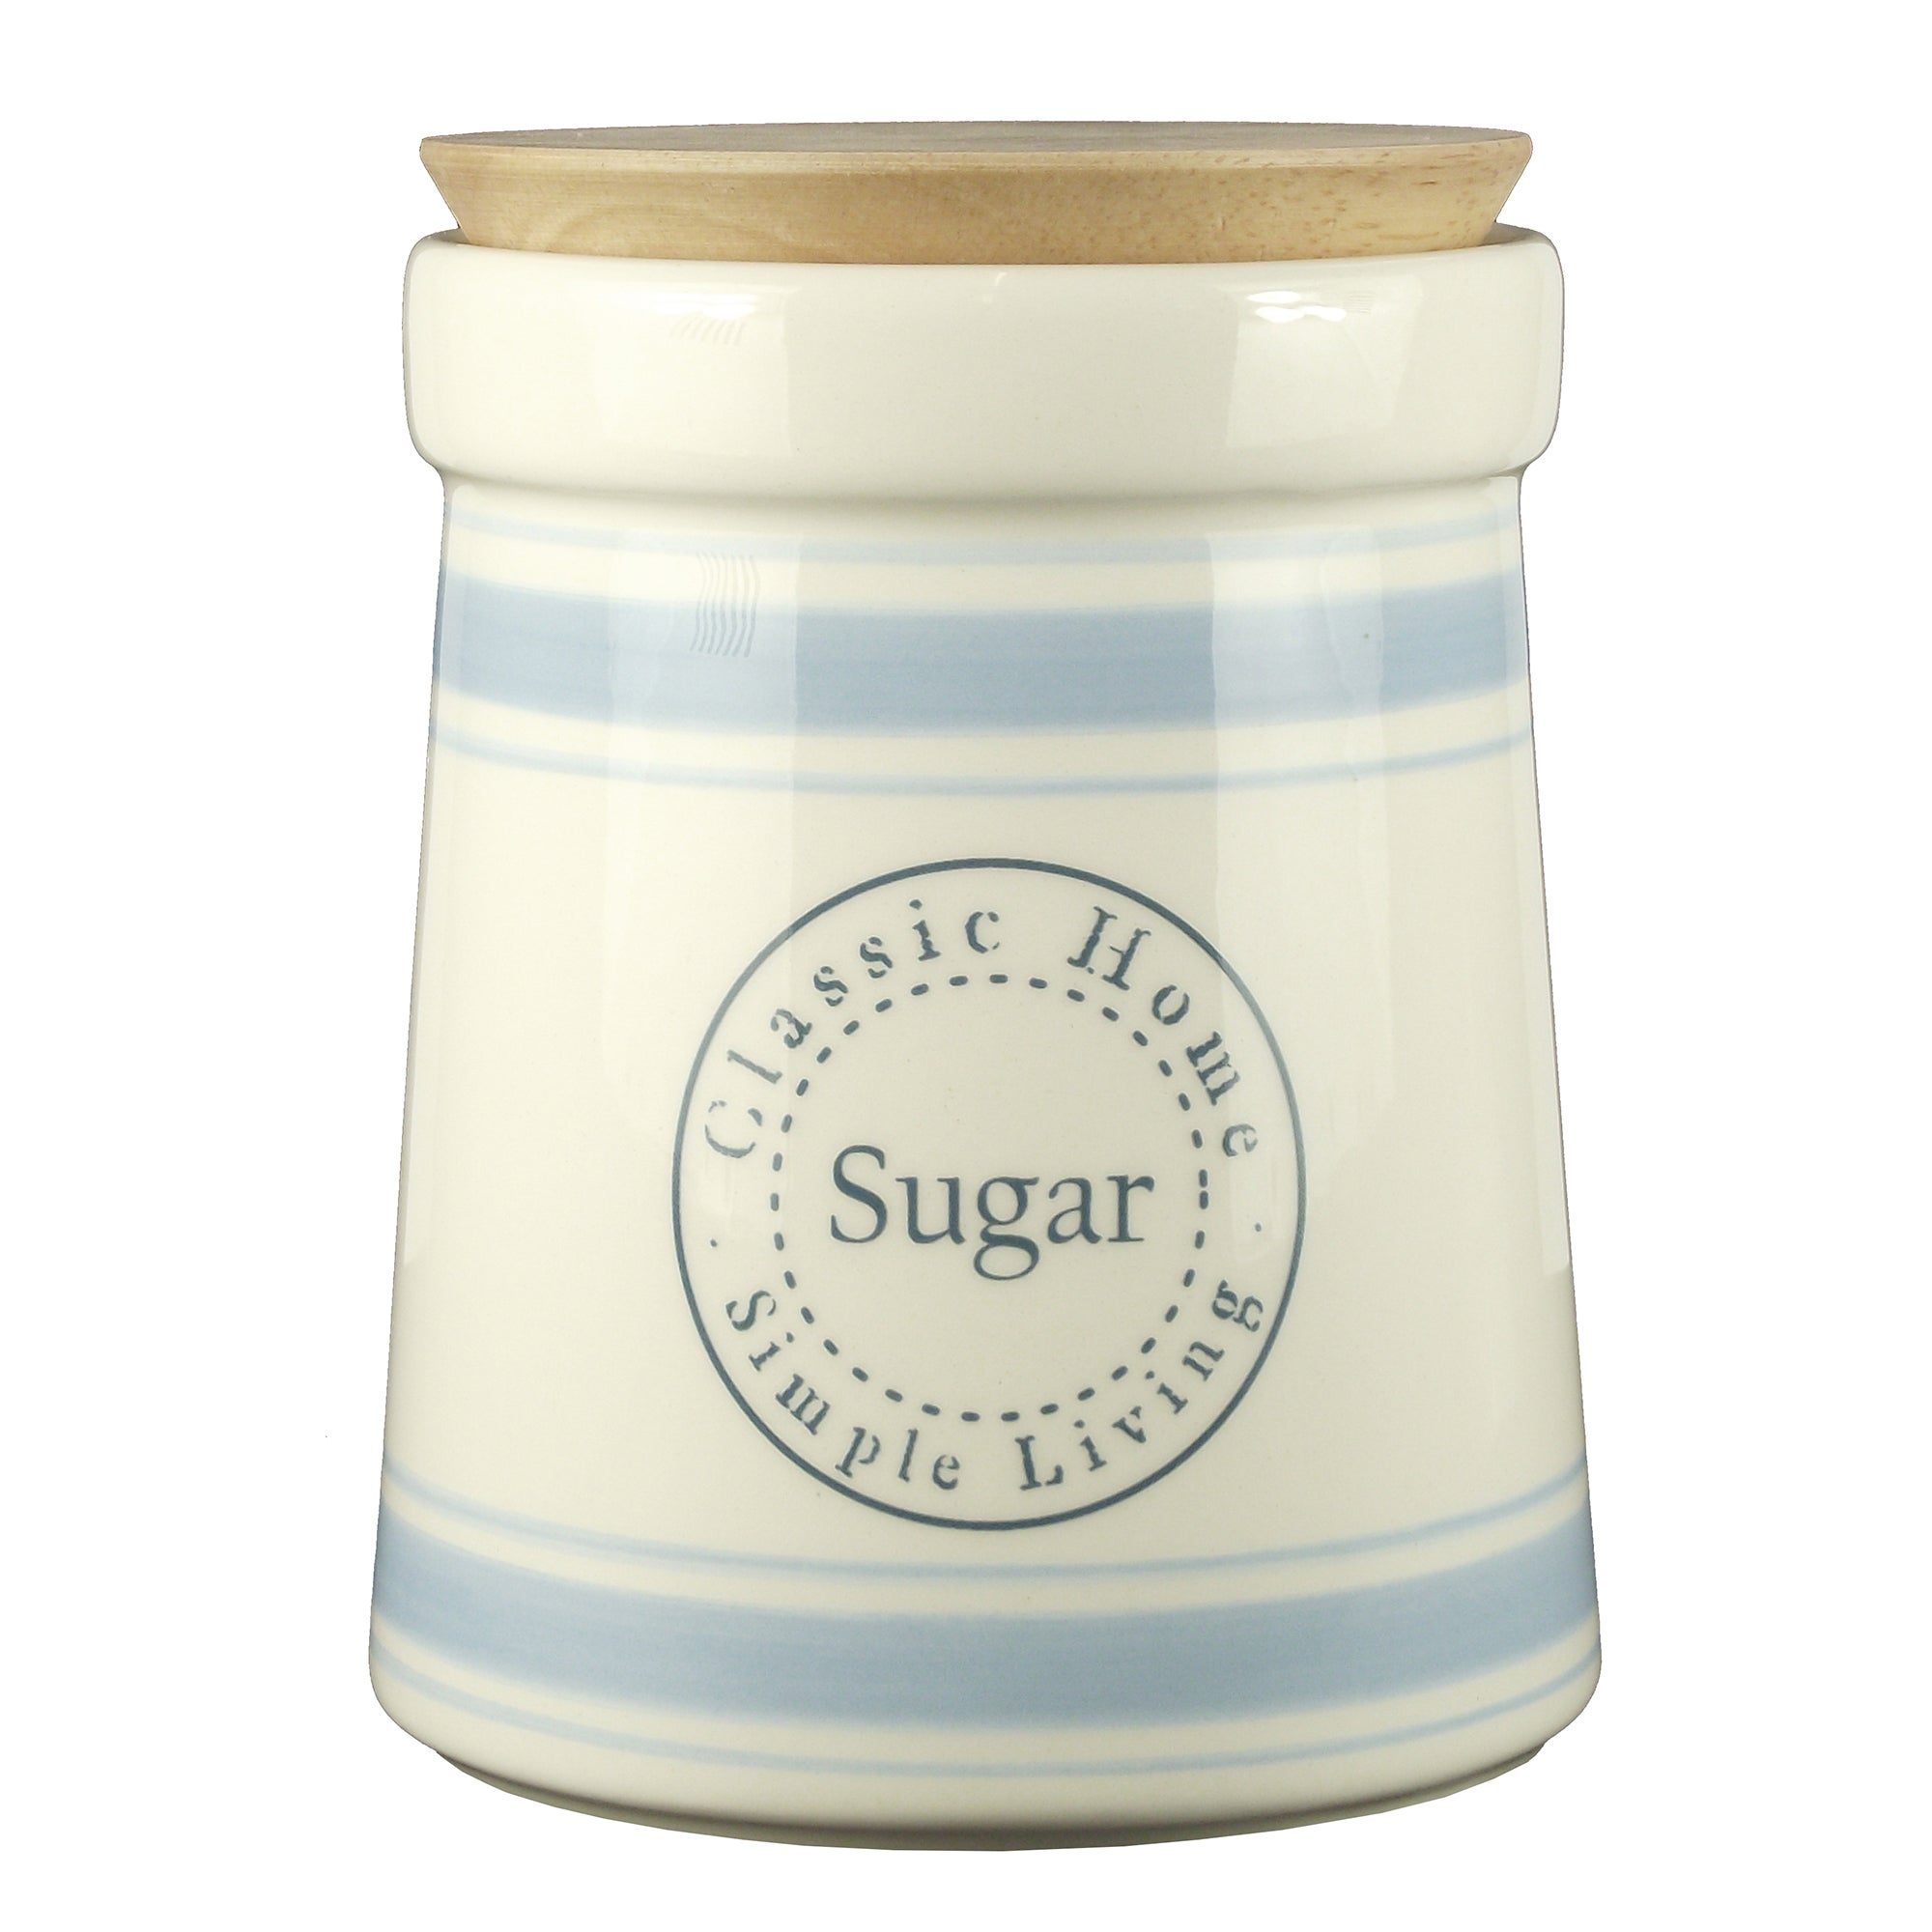 Classic Home Collection Sugar Canister